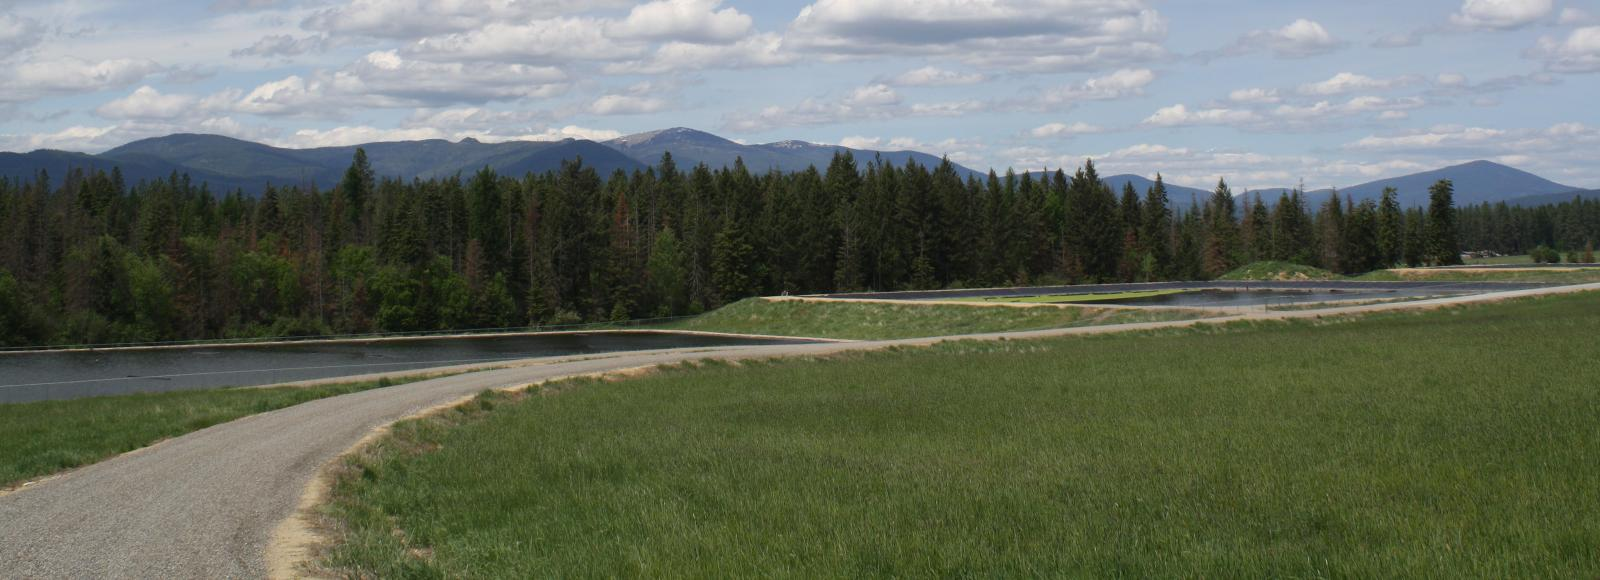 A gravel road winds through grassland. Two wastewater treatment pools are just beyond the far edge of the gravel road, with a stand of conifer trees in the back. Small mountains are in the distance.